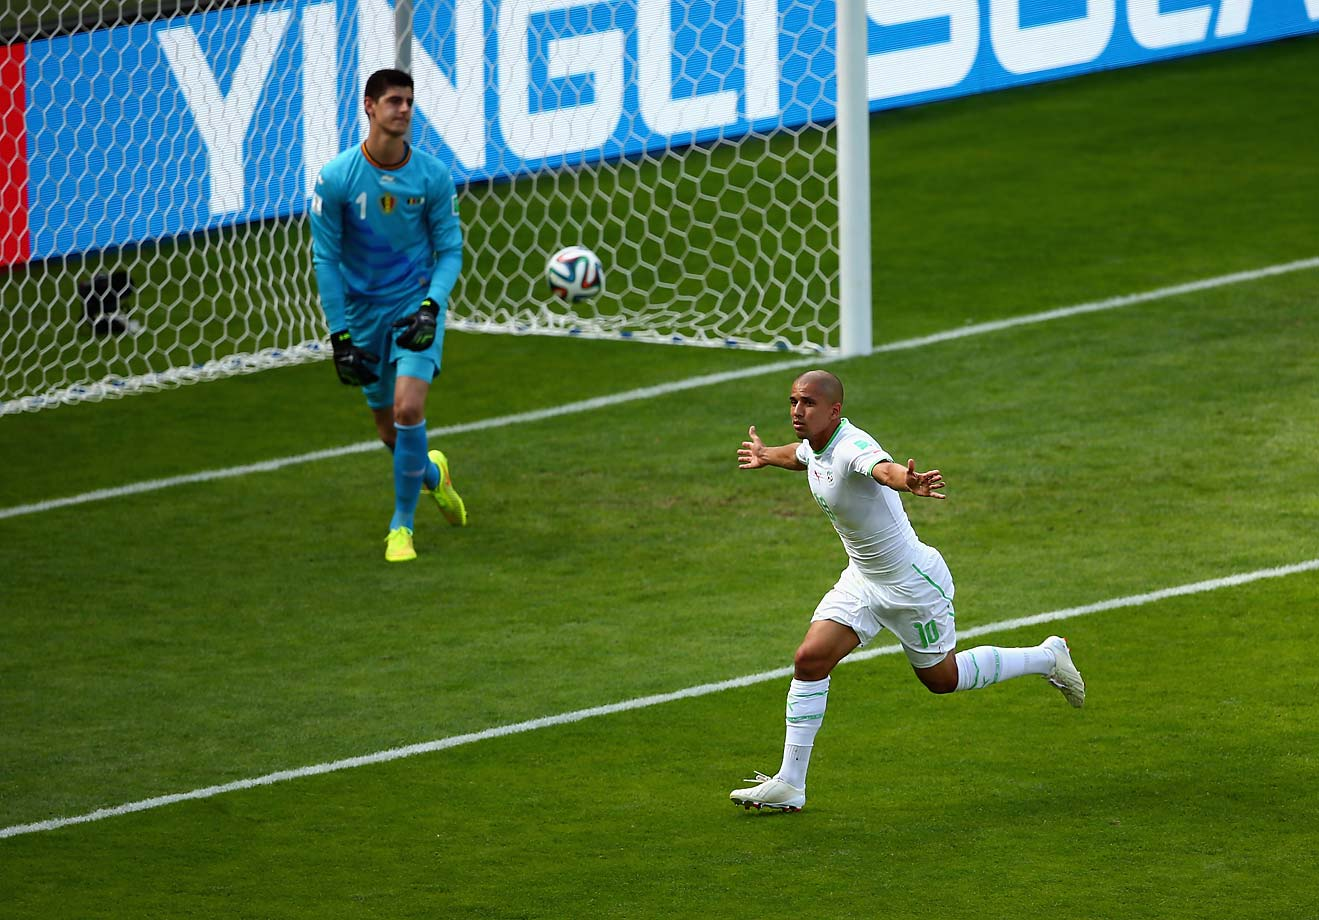 Sofiane Feghouli of Algeria scores the first goal of the Group H match between Algeria and Belgium off of a penalty kick in the first half.